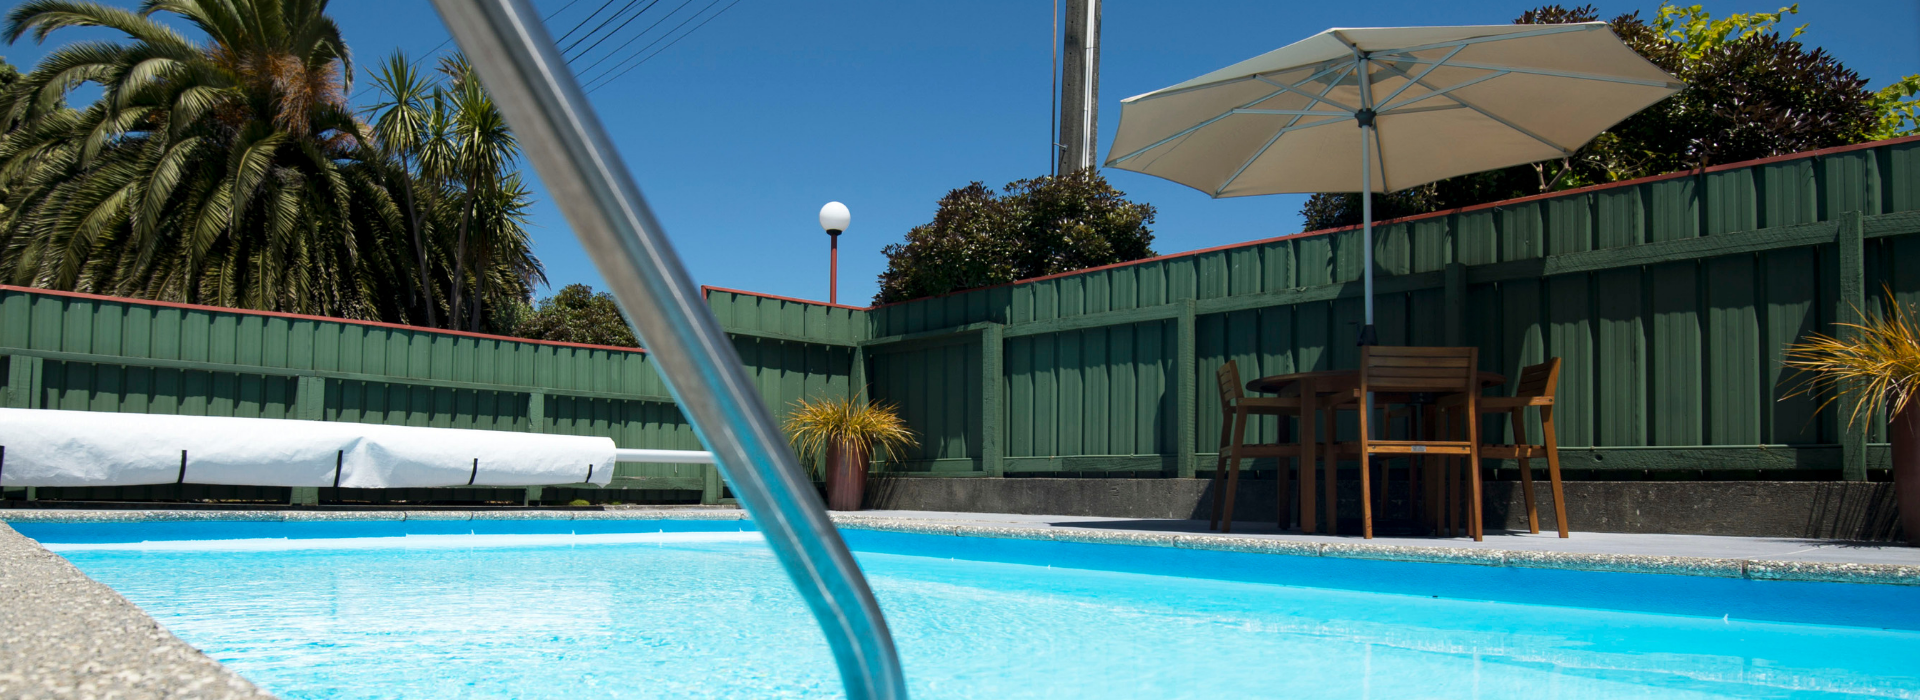 kapiti pool image day